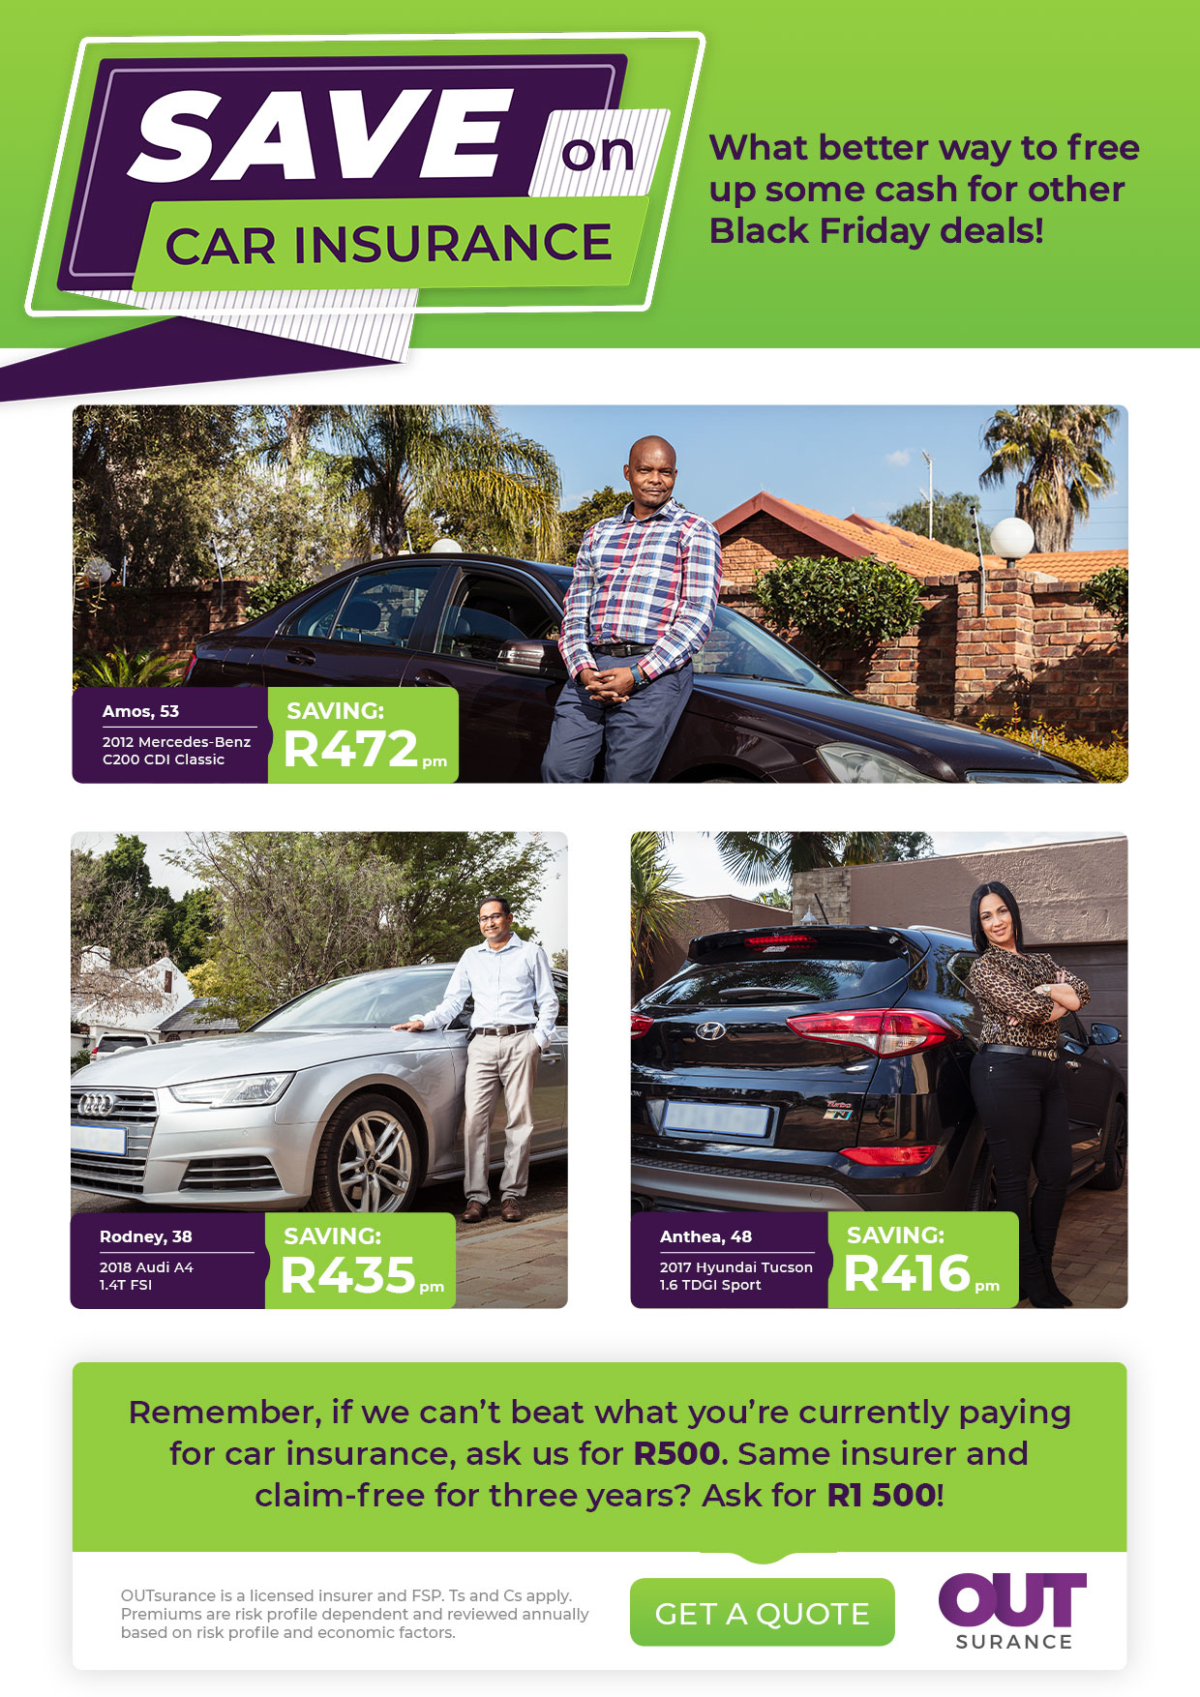 OUTsurance: Black Friday 2020